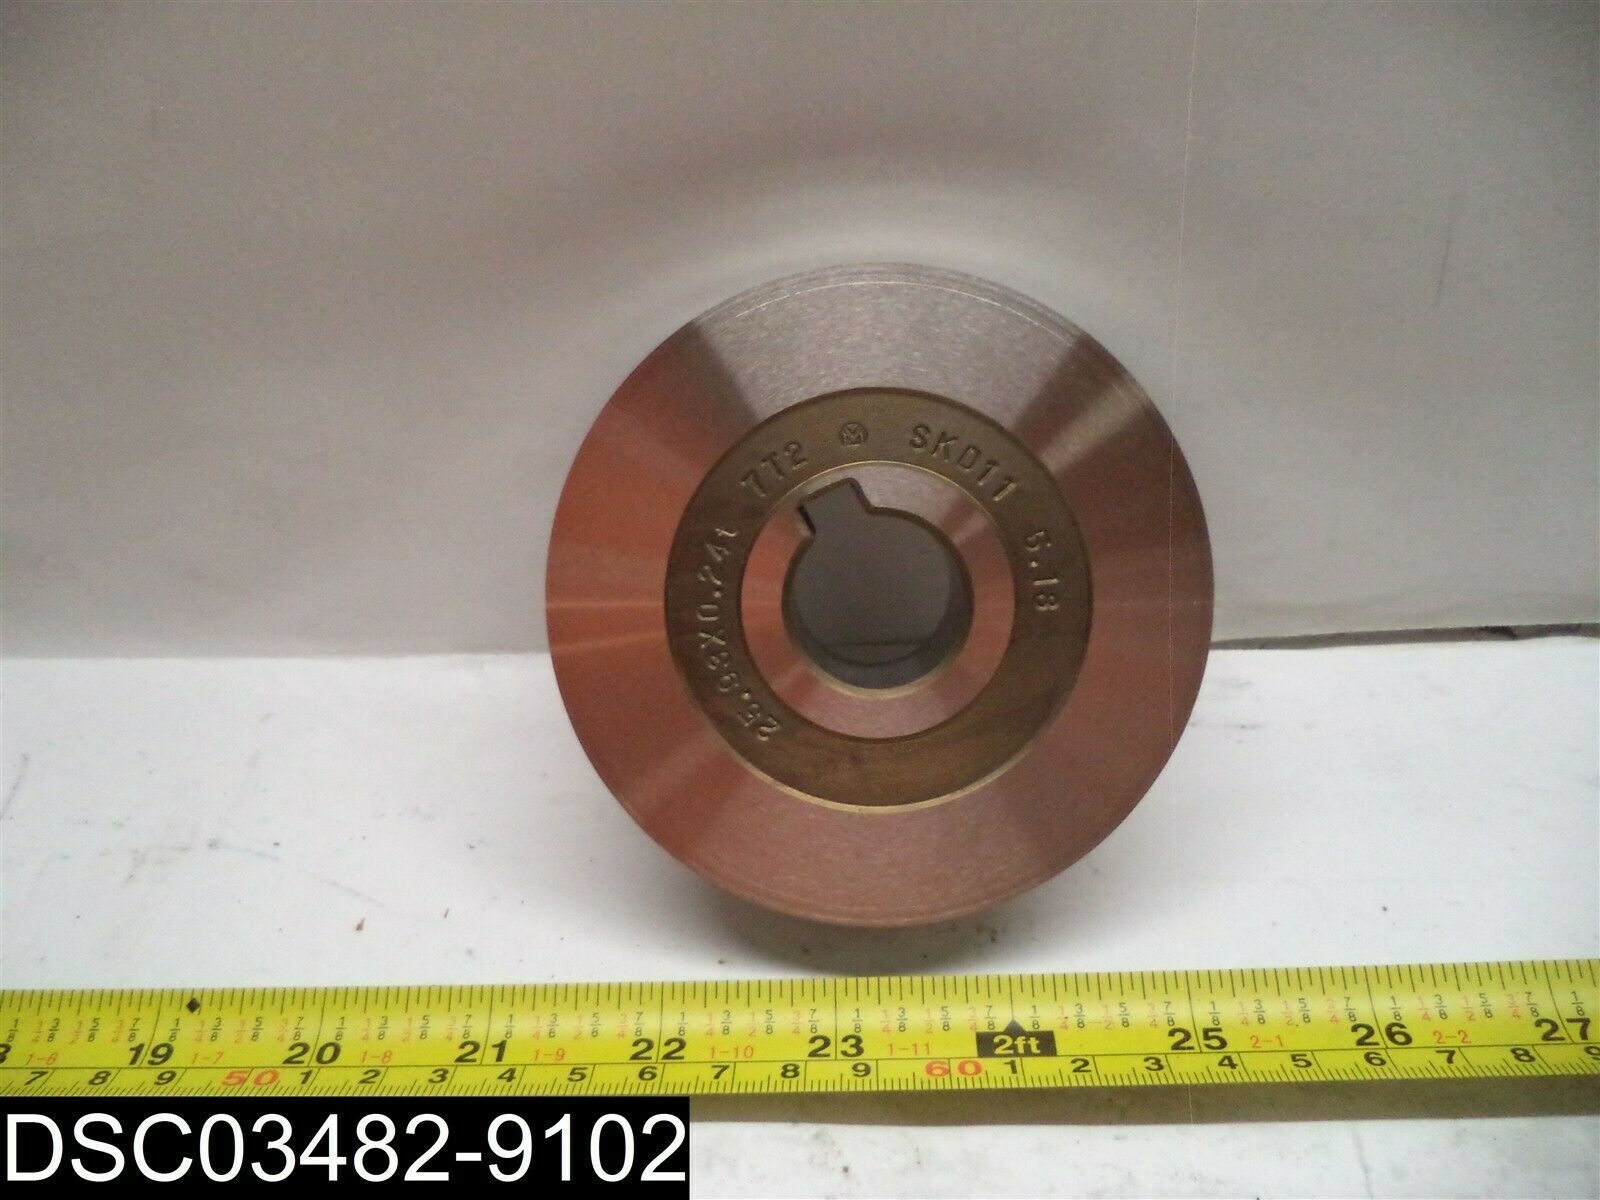 """7T2 Metal Disk W/Notched Bore 3-3/4"""" Dia. 1"""" Bore, 1-1/16"""" Thickness"""